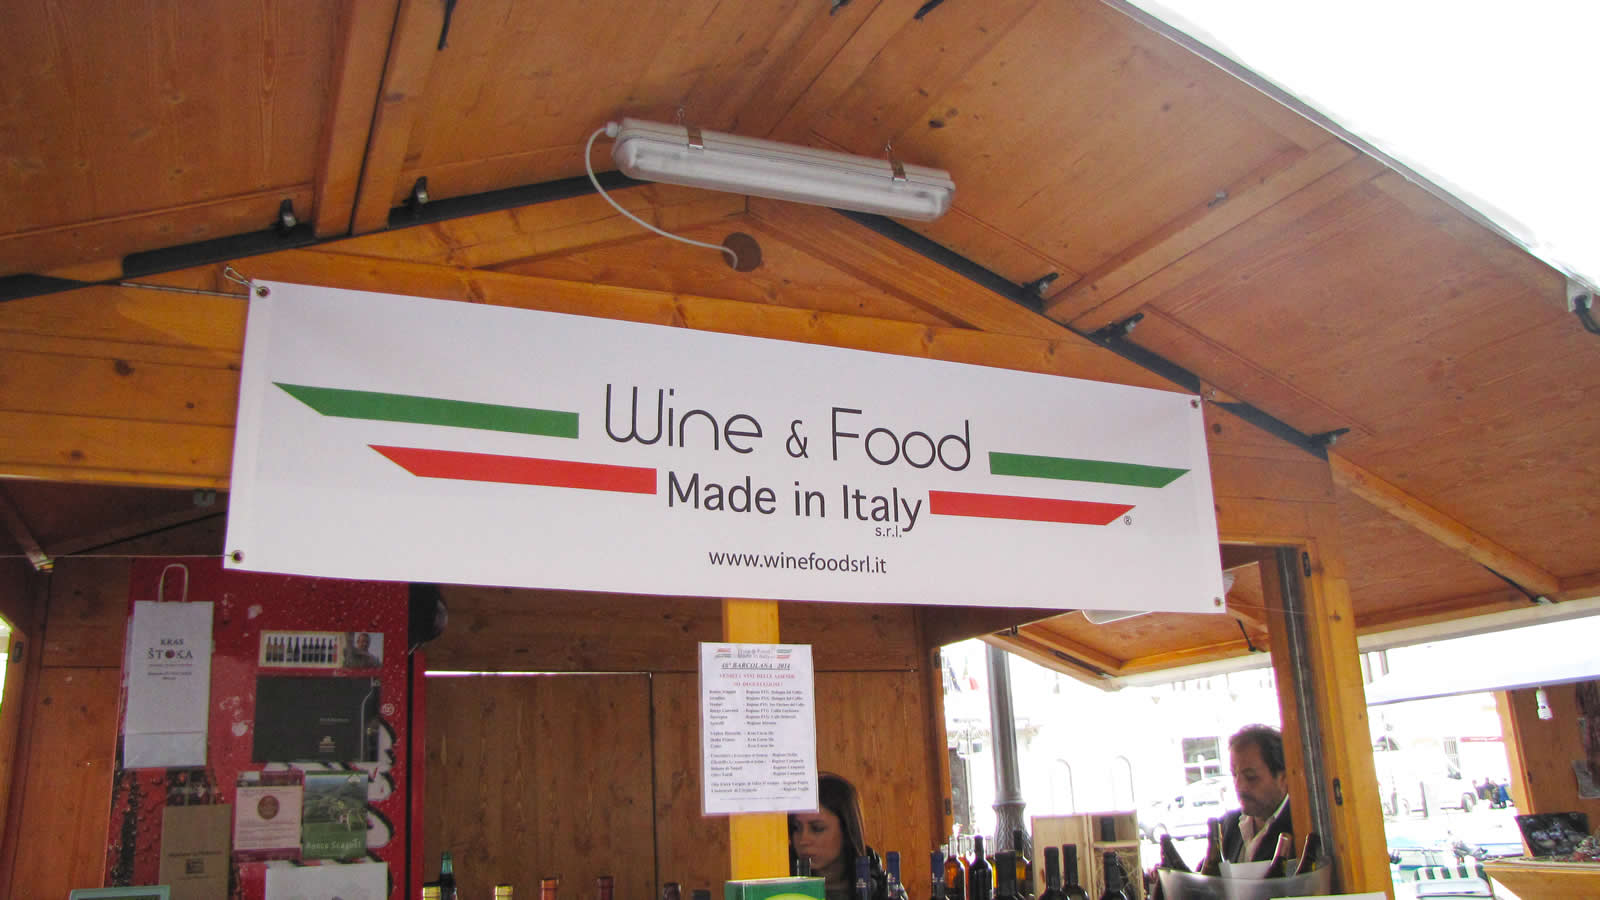 Striscione Wine & Food Made in Italy